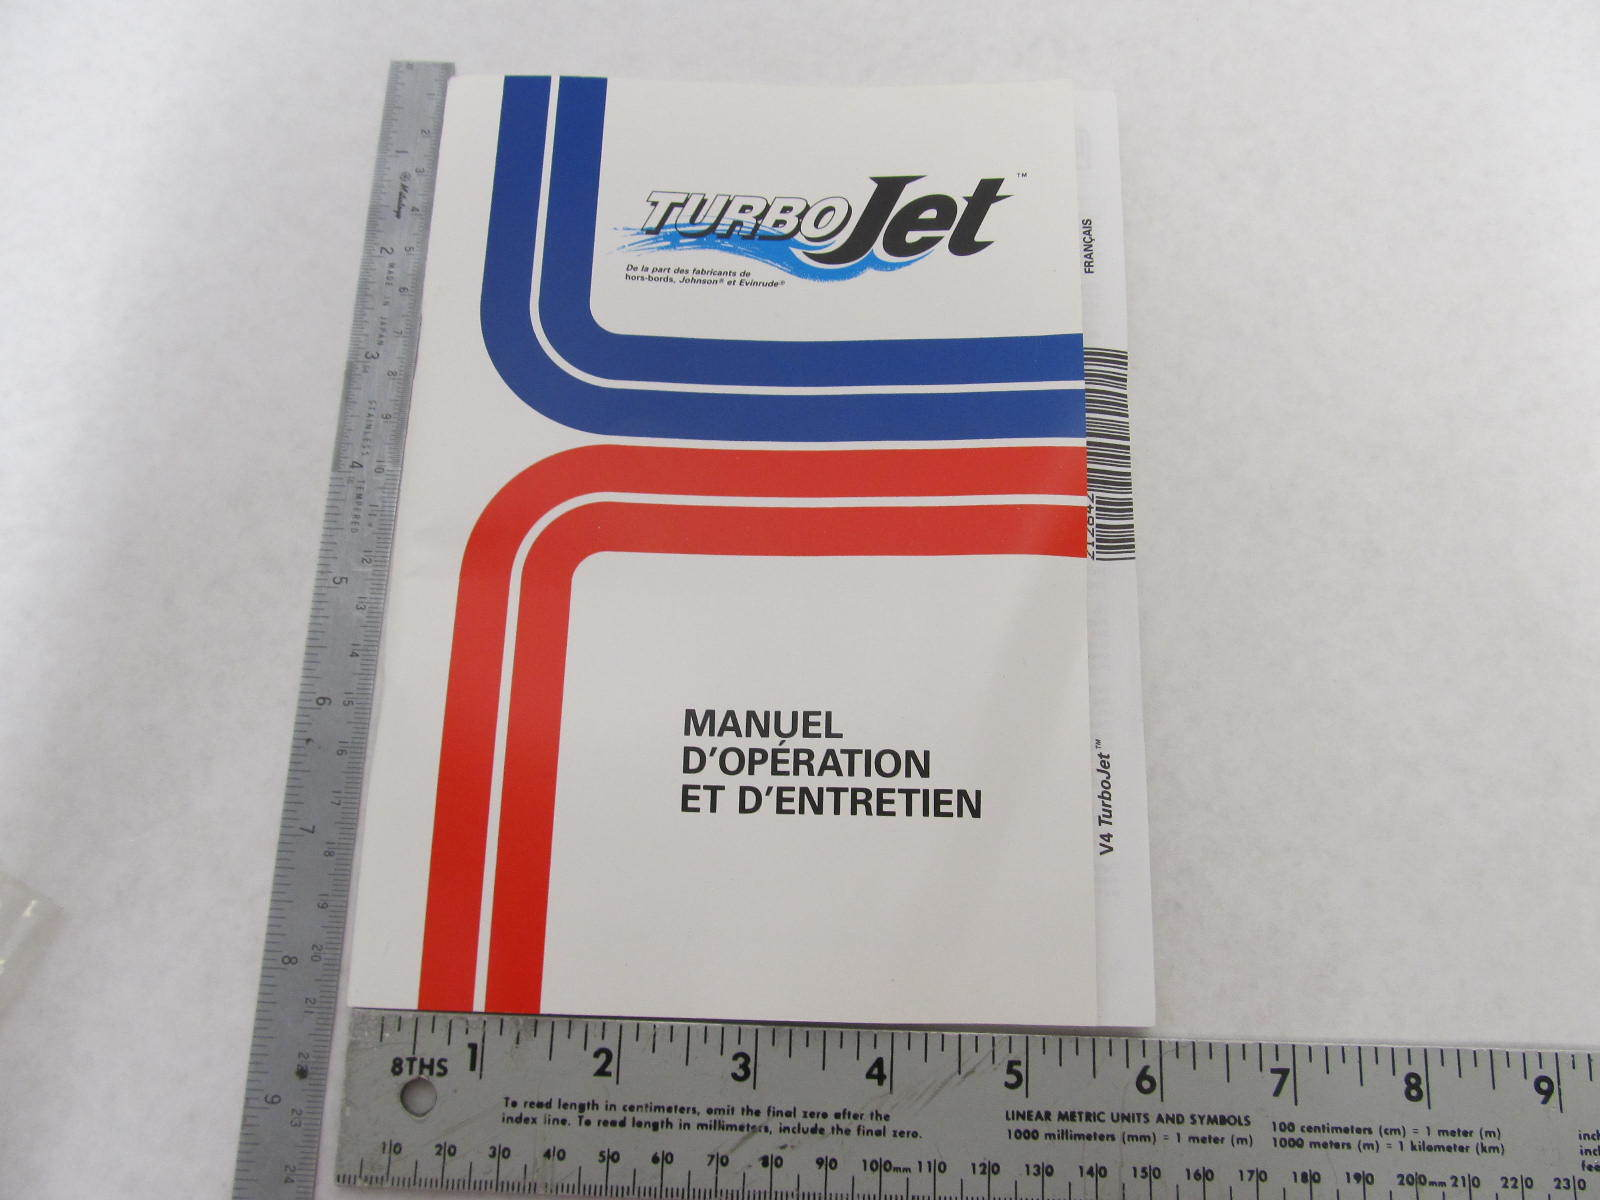 Omc 115 Turbojet service manual